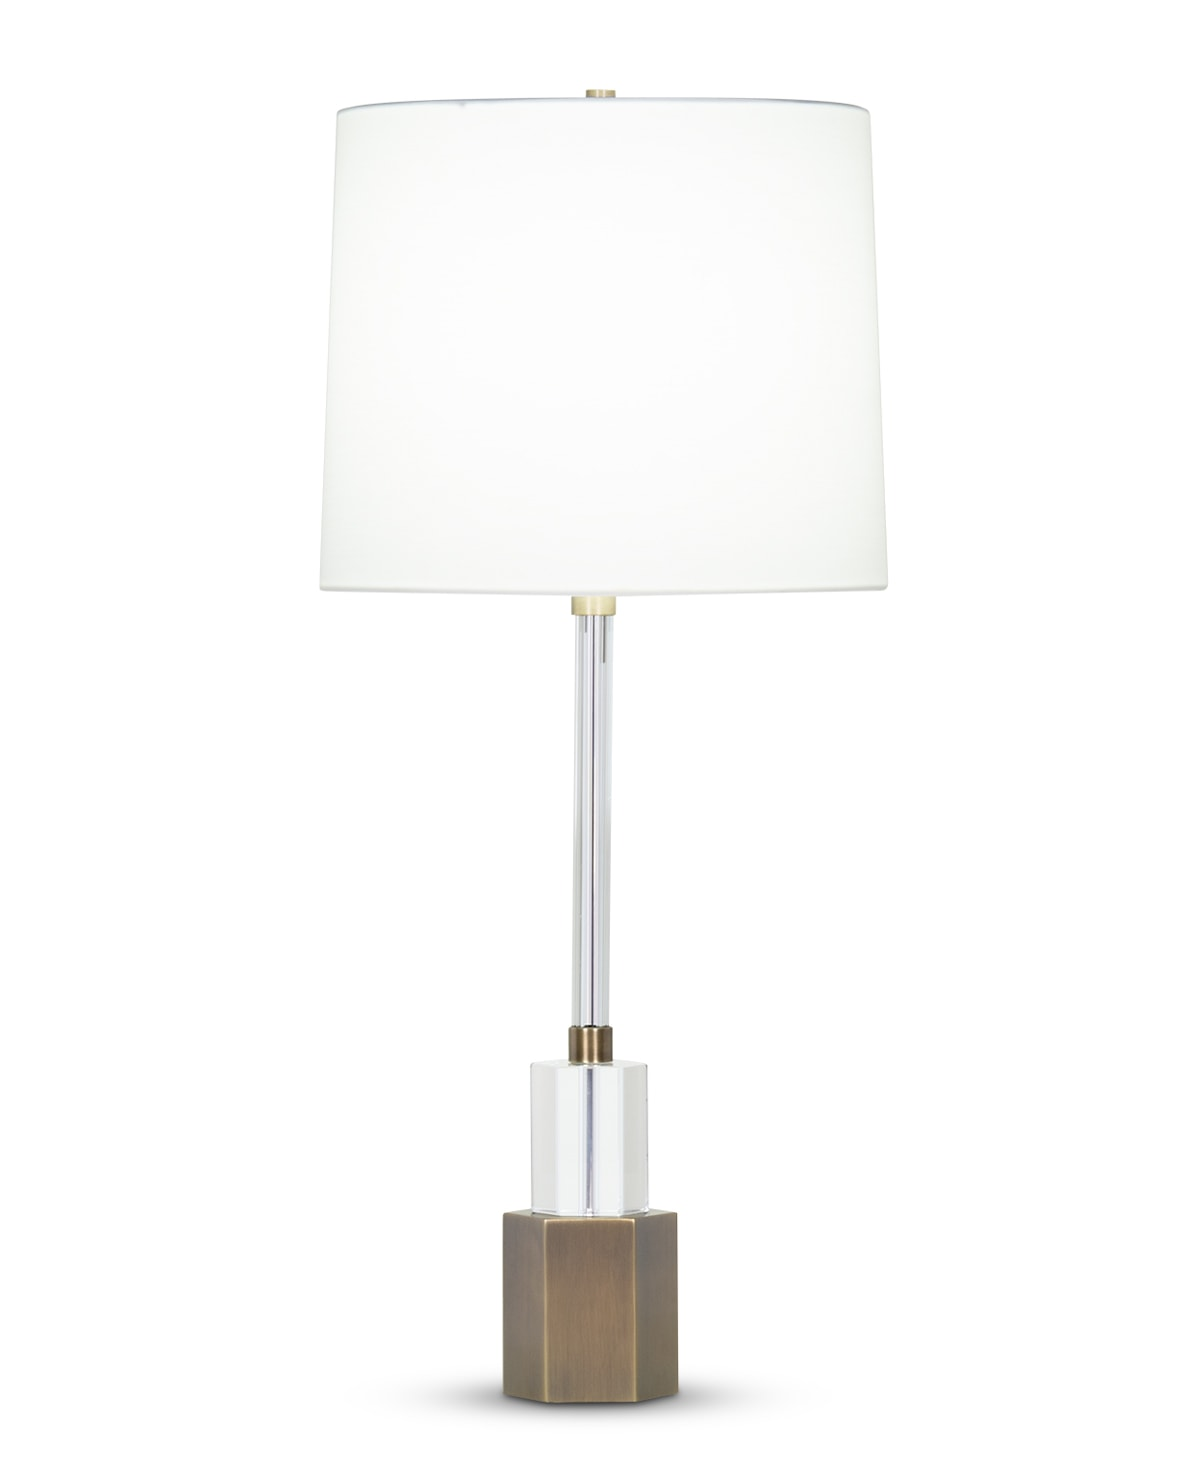 FlowDecor Rhodes Table Lamp in crystal and metal with antique brass finish and off-white cotton tapered drum shade (# 4408)